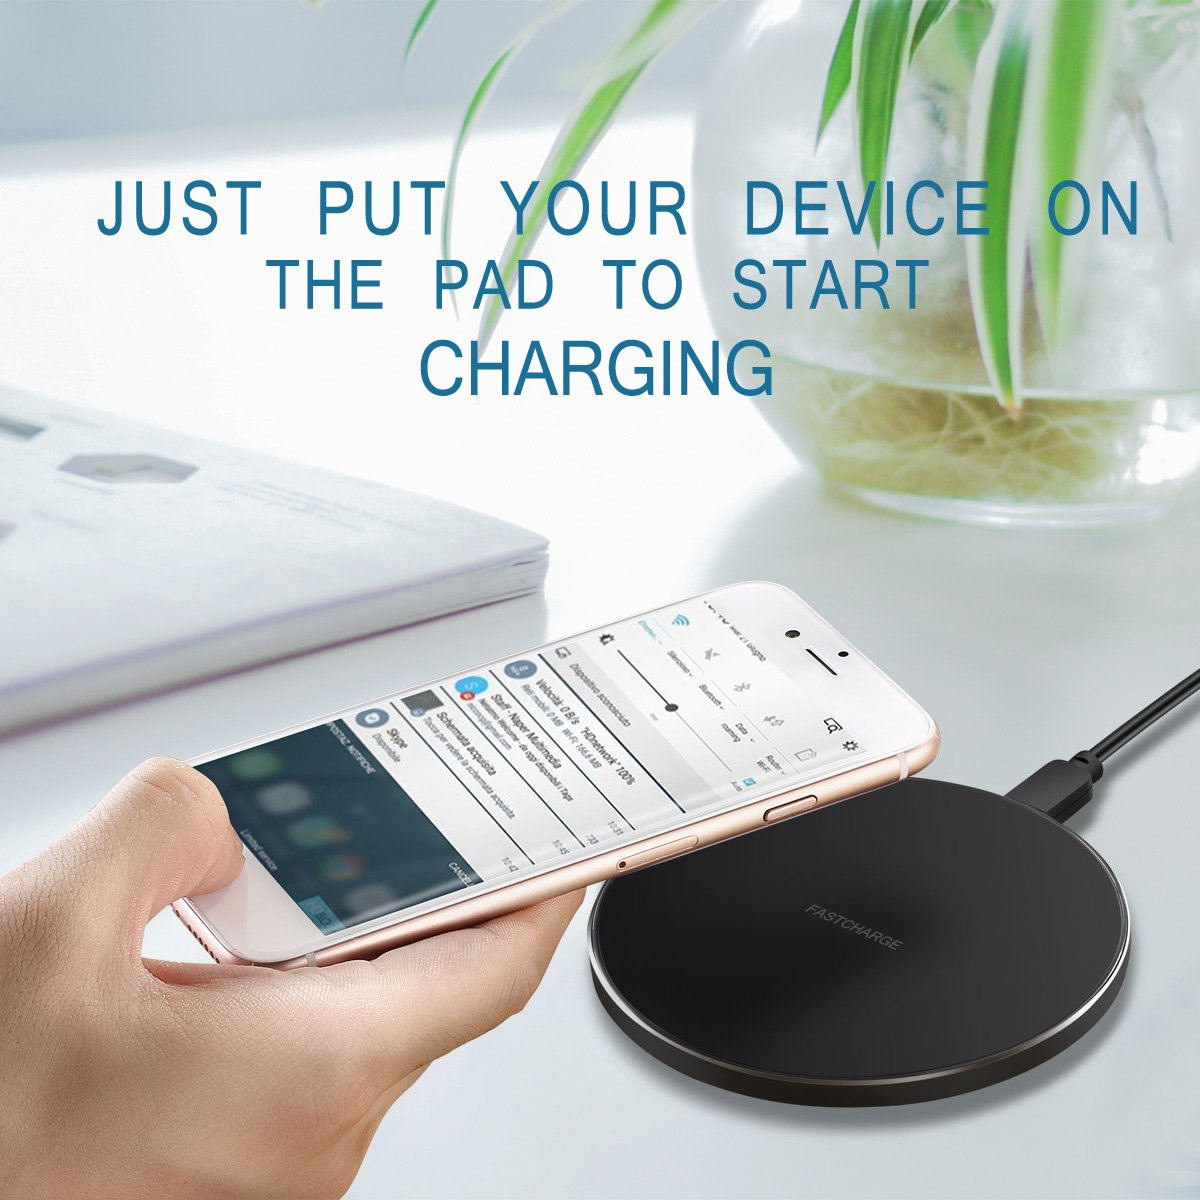 Fast Charger for Samsung Galaxy S8 edge - Wireless Charging Pad for Samsung Galaxy Note 8/S8/S8 Plus/S7/S7 Edge/S6/S6 Edge,Qi Standard Charger for iPhone X/iPhone 8/iPhone 8 Plus(Black)